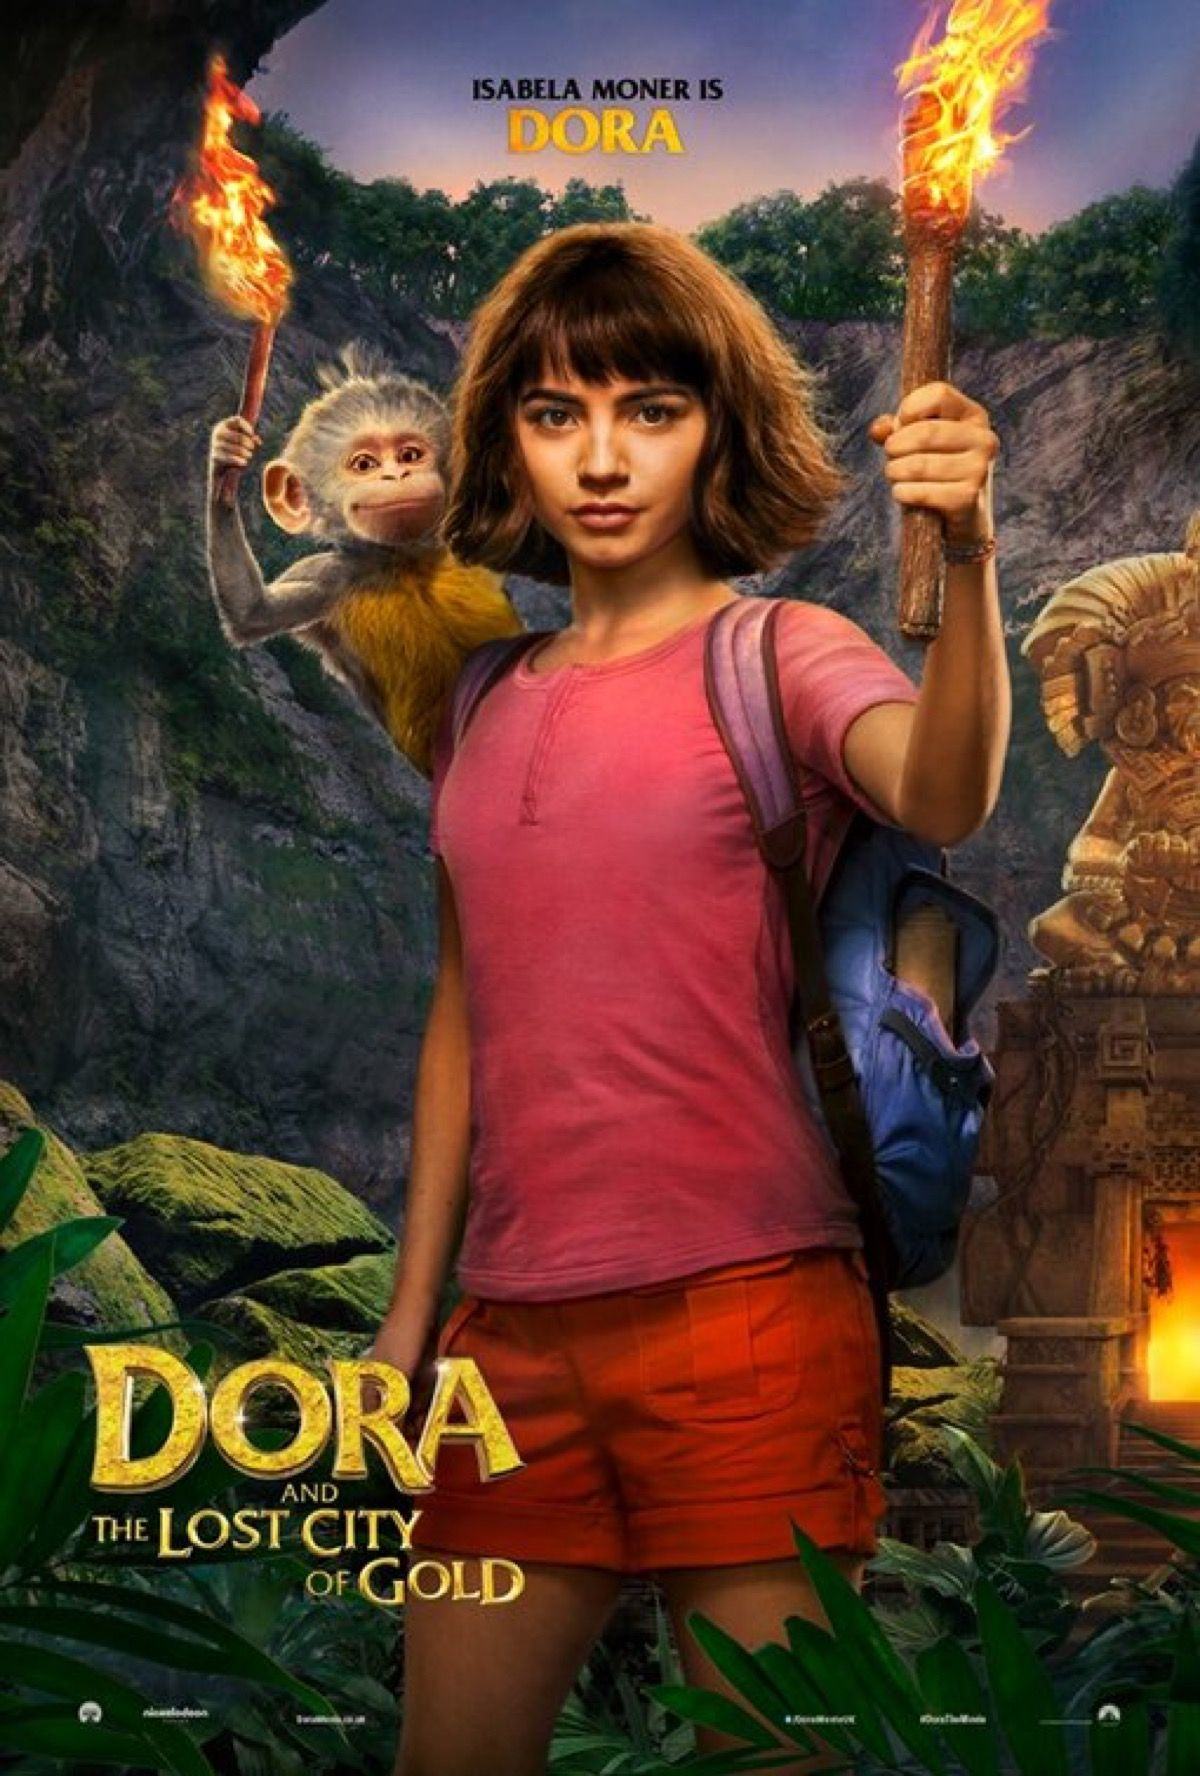 Dora And The Lost City Of Gold The Adventure Begins As Young Explorer Comes To The Big Screen Promo Lost City Of Gold Lost City Disney Original Movies